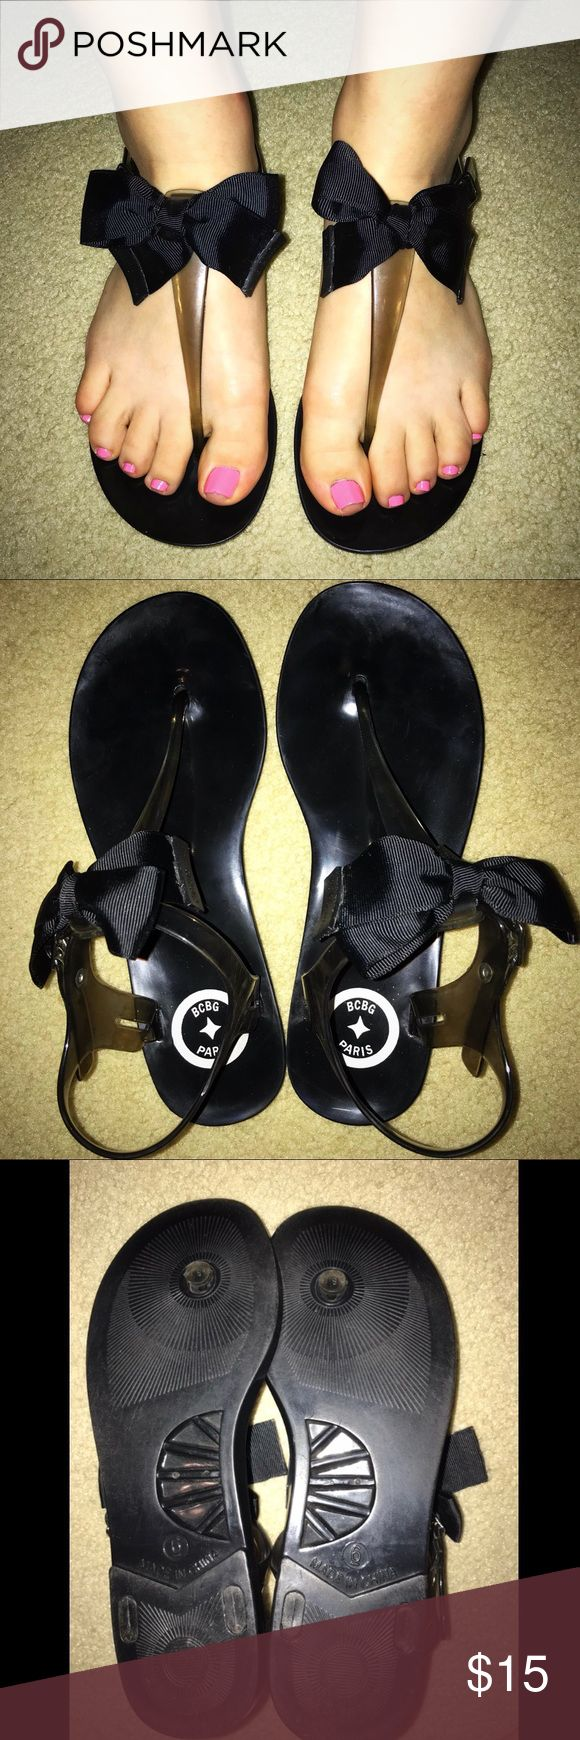 BCBG black ribbon / bow jelly sandals These sandals are in AWESOME condition and have barely been worn! They are comfy, cute, designer, and go with everything :) BCBG Shoes Sandals